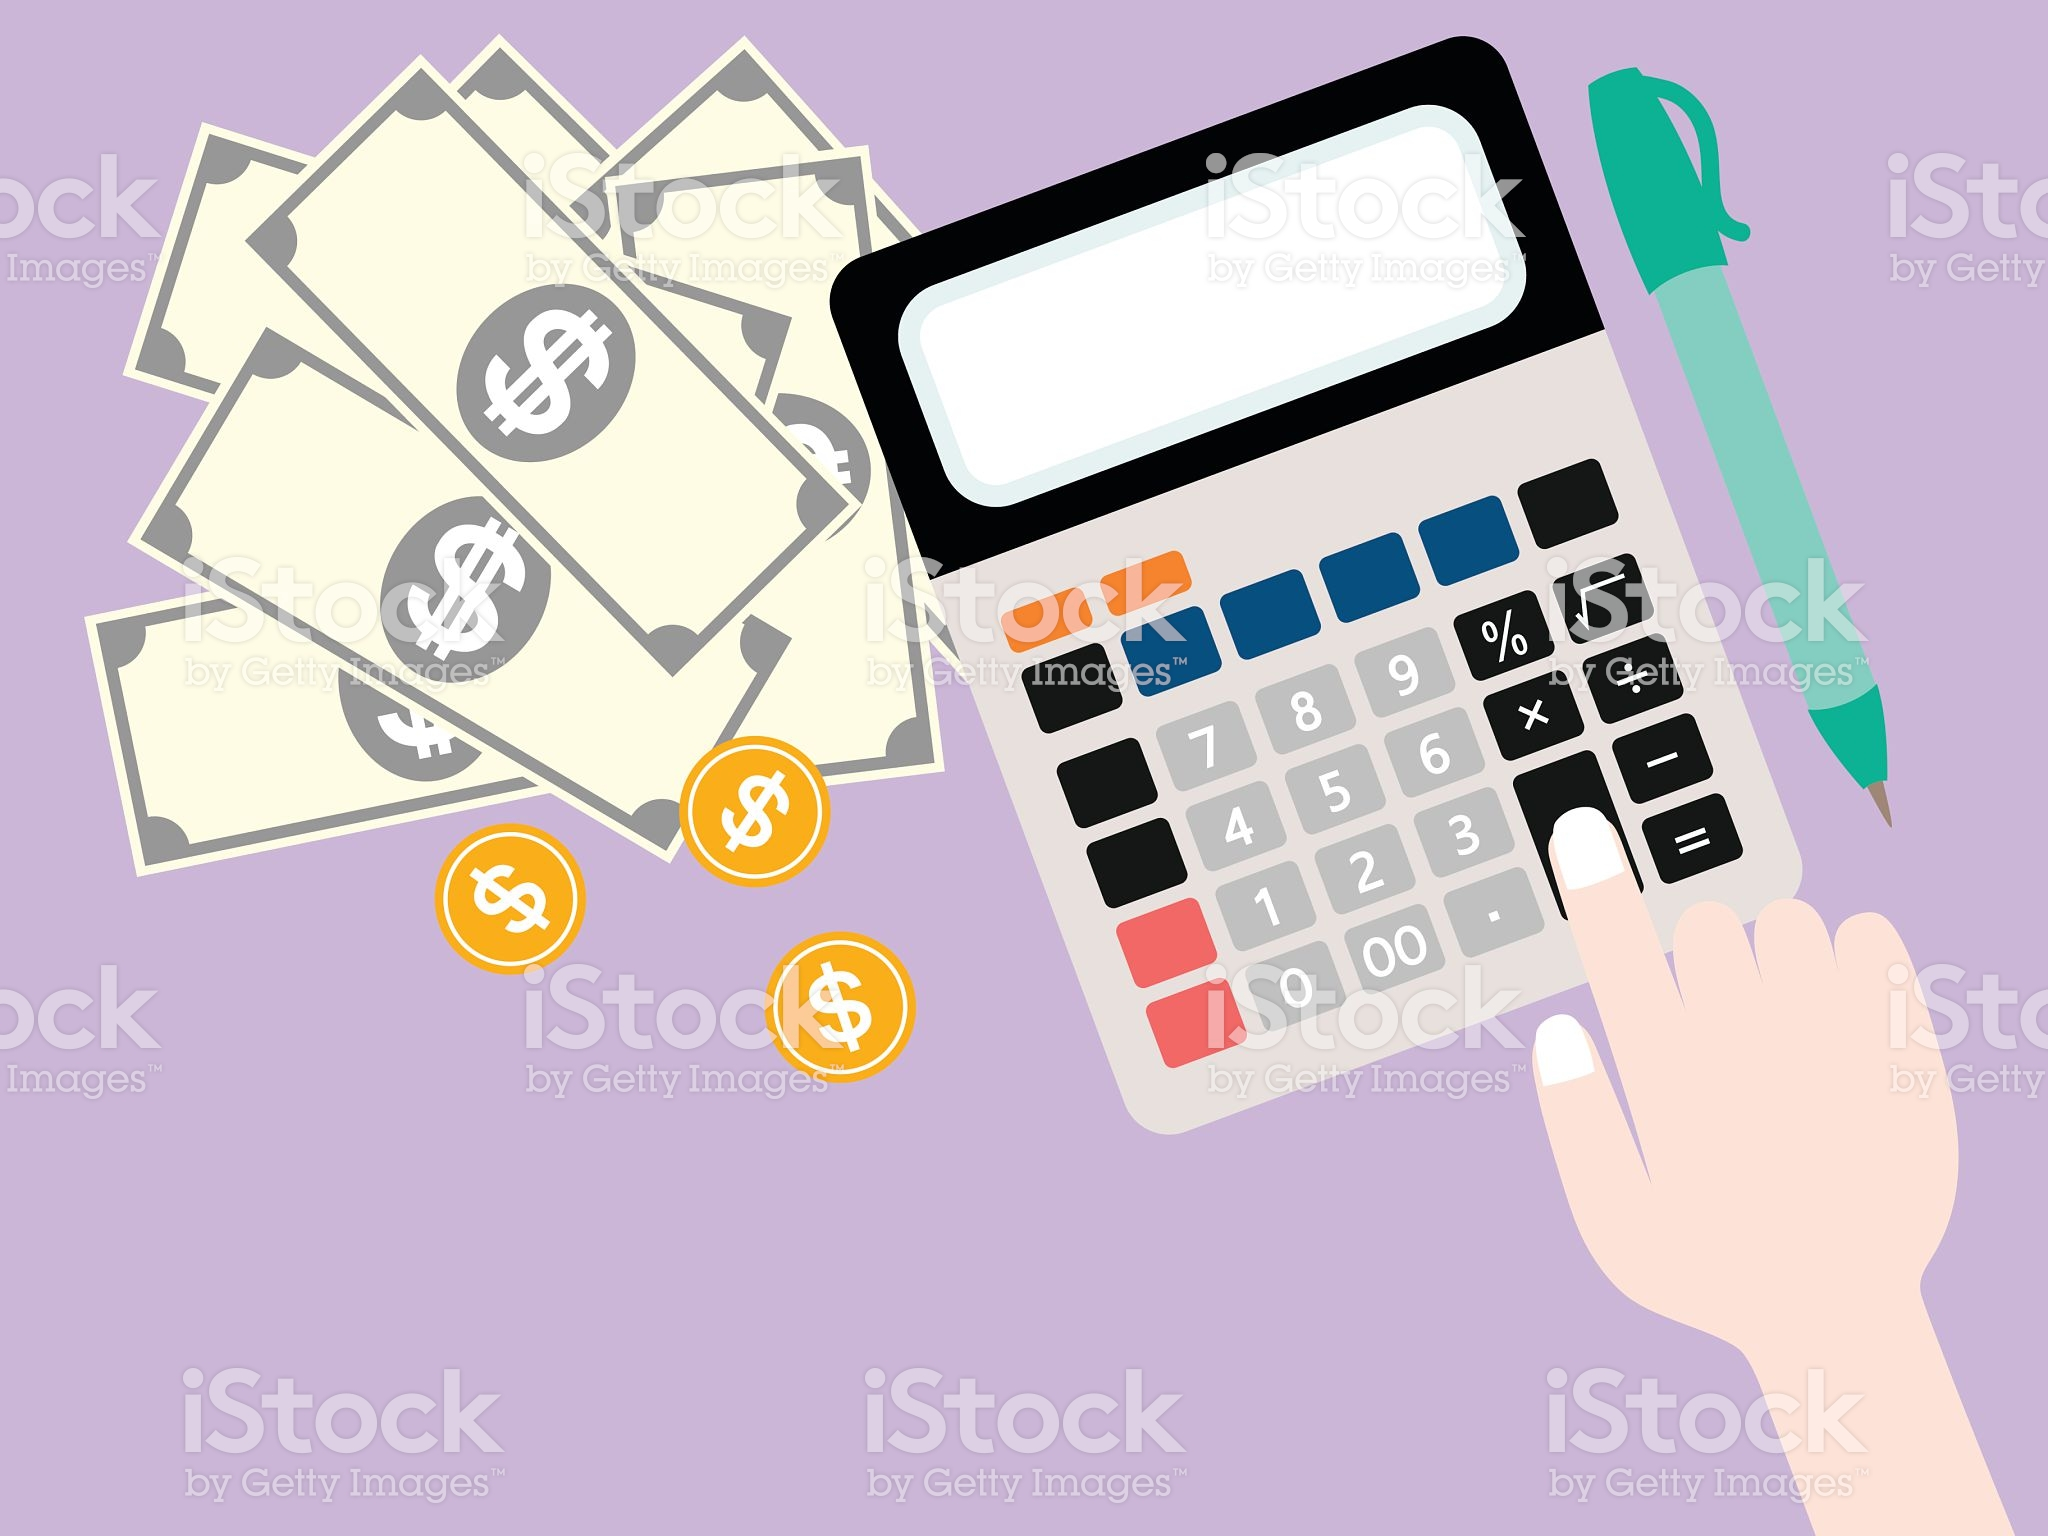 Retail Skill Calculation - istockphoto.com